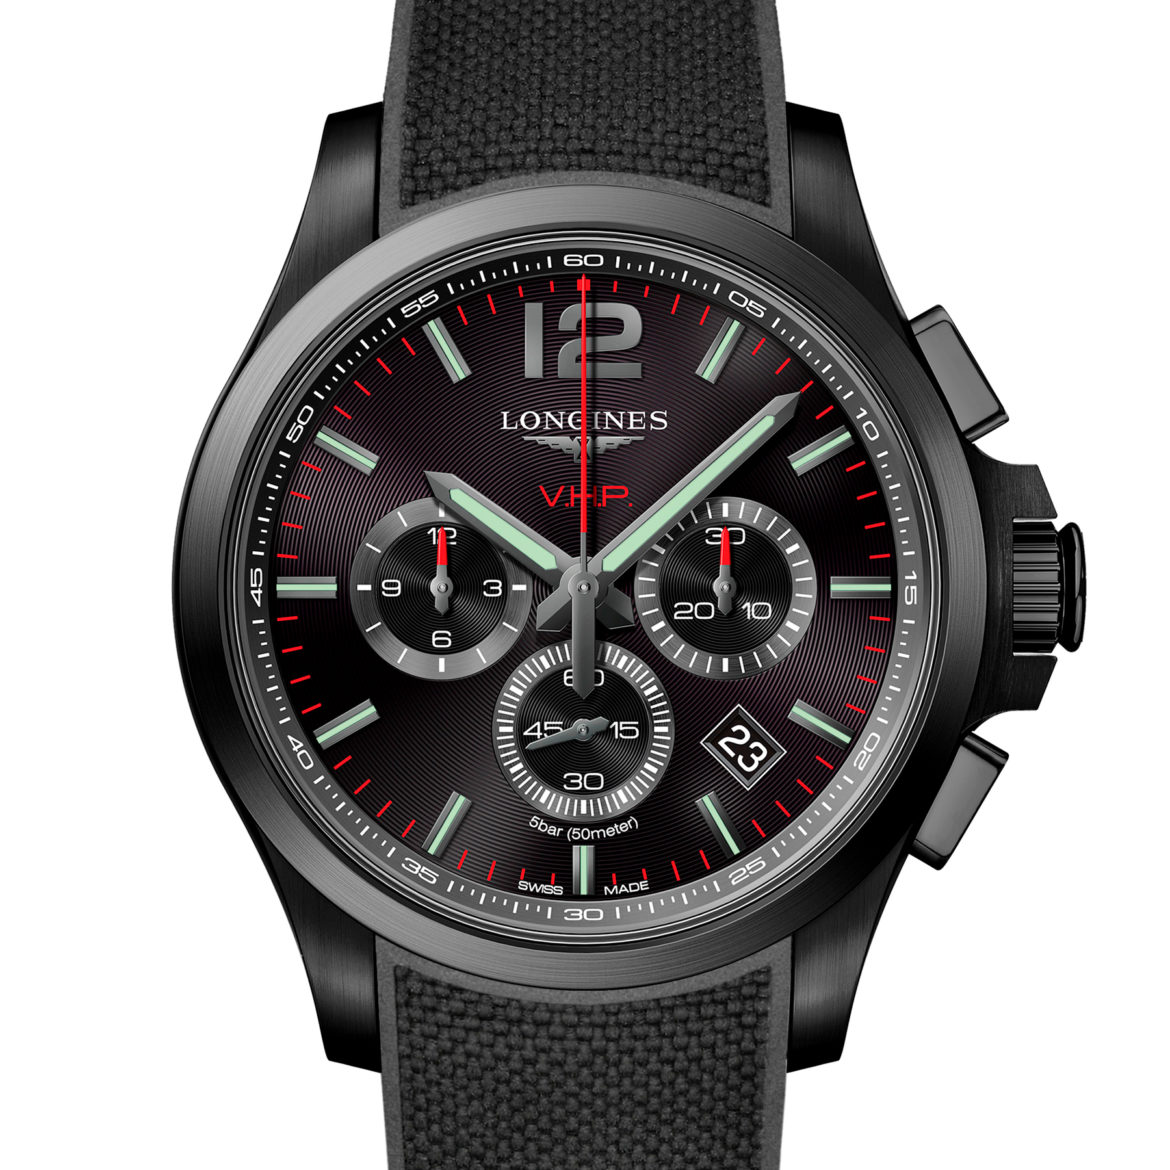 LONGINES</br/>Conquest VHP</br/>L37272569